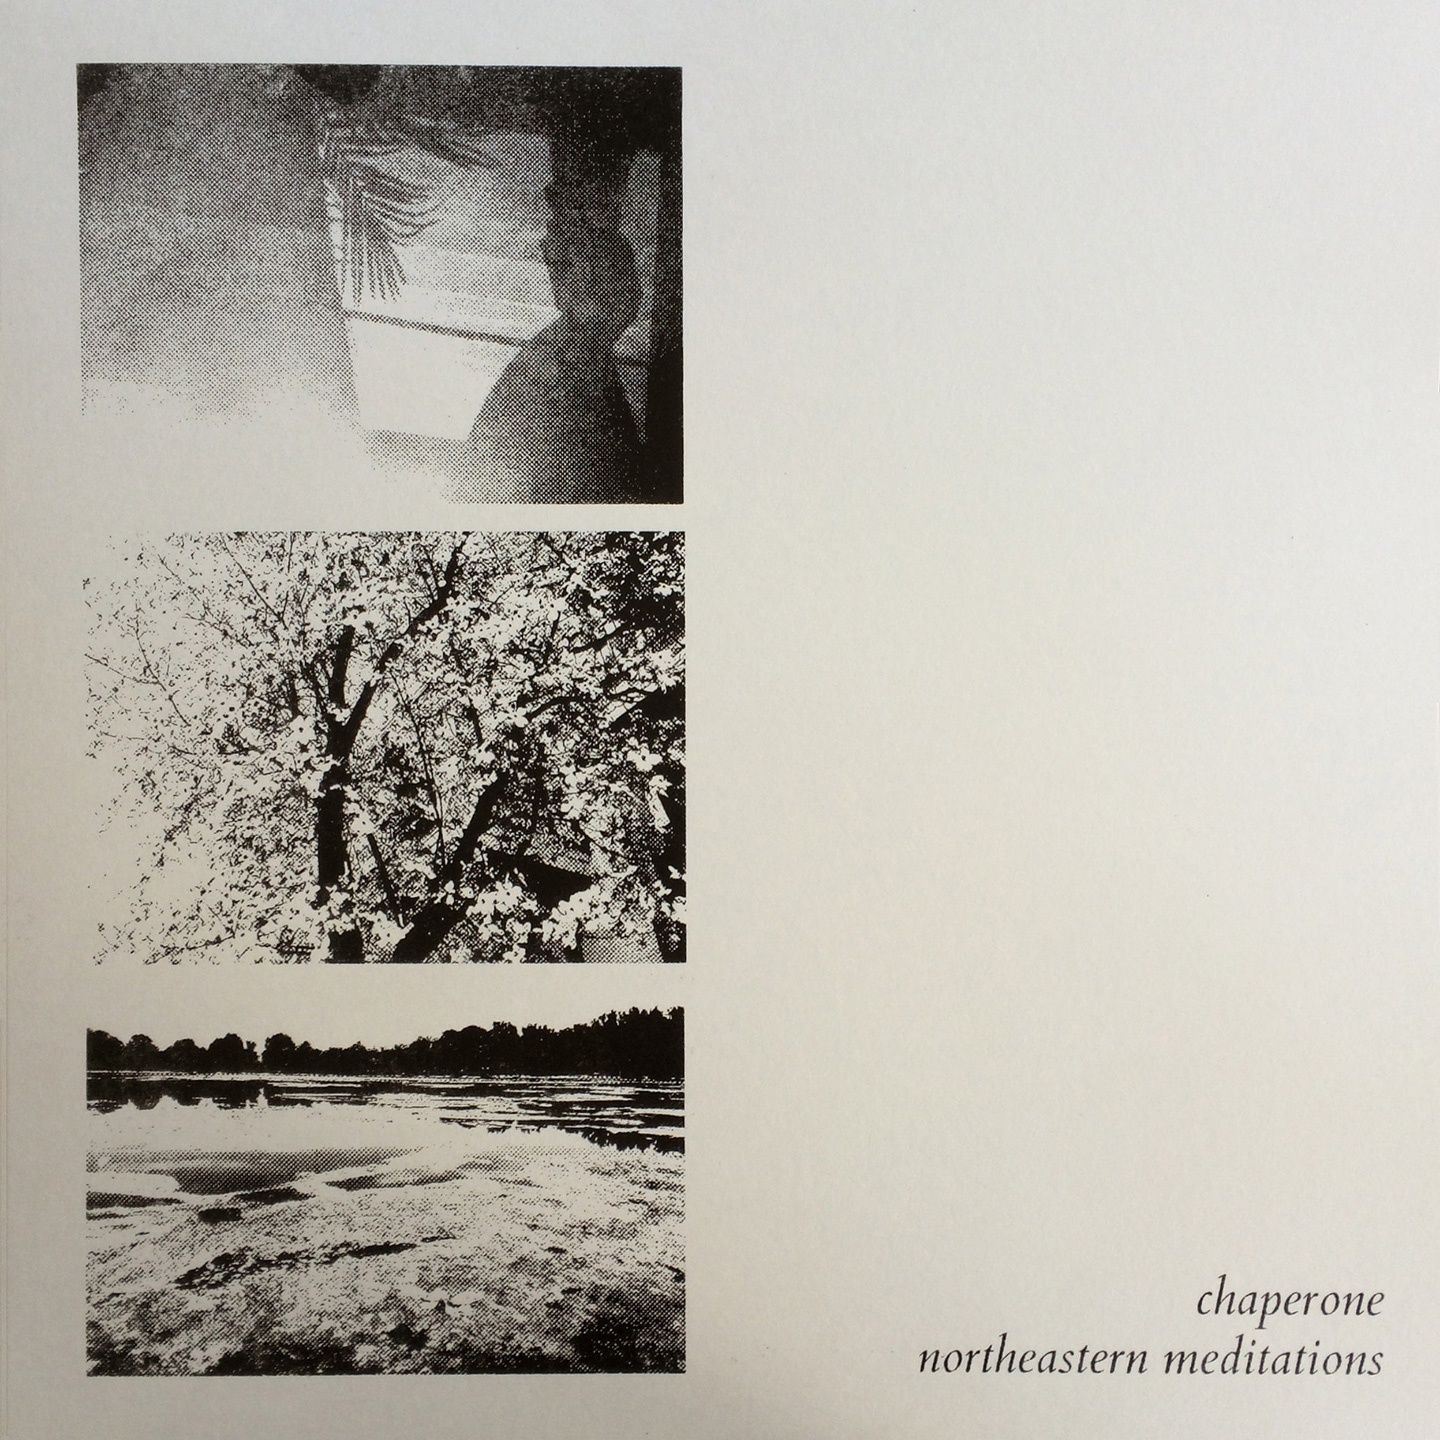 Chaperone - Northeastern Meditations